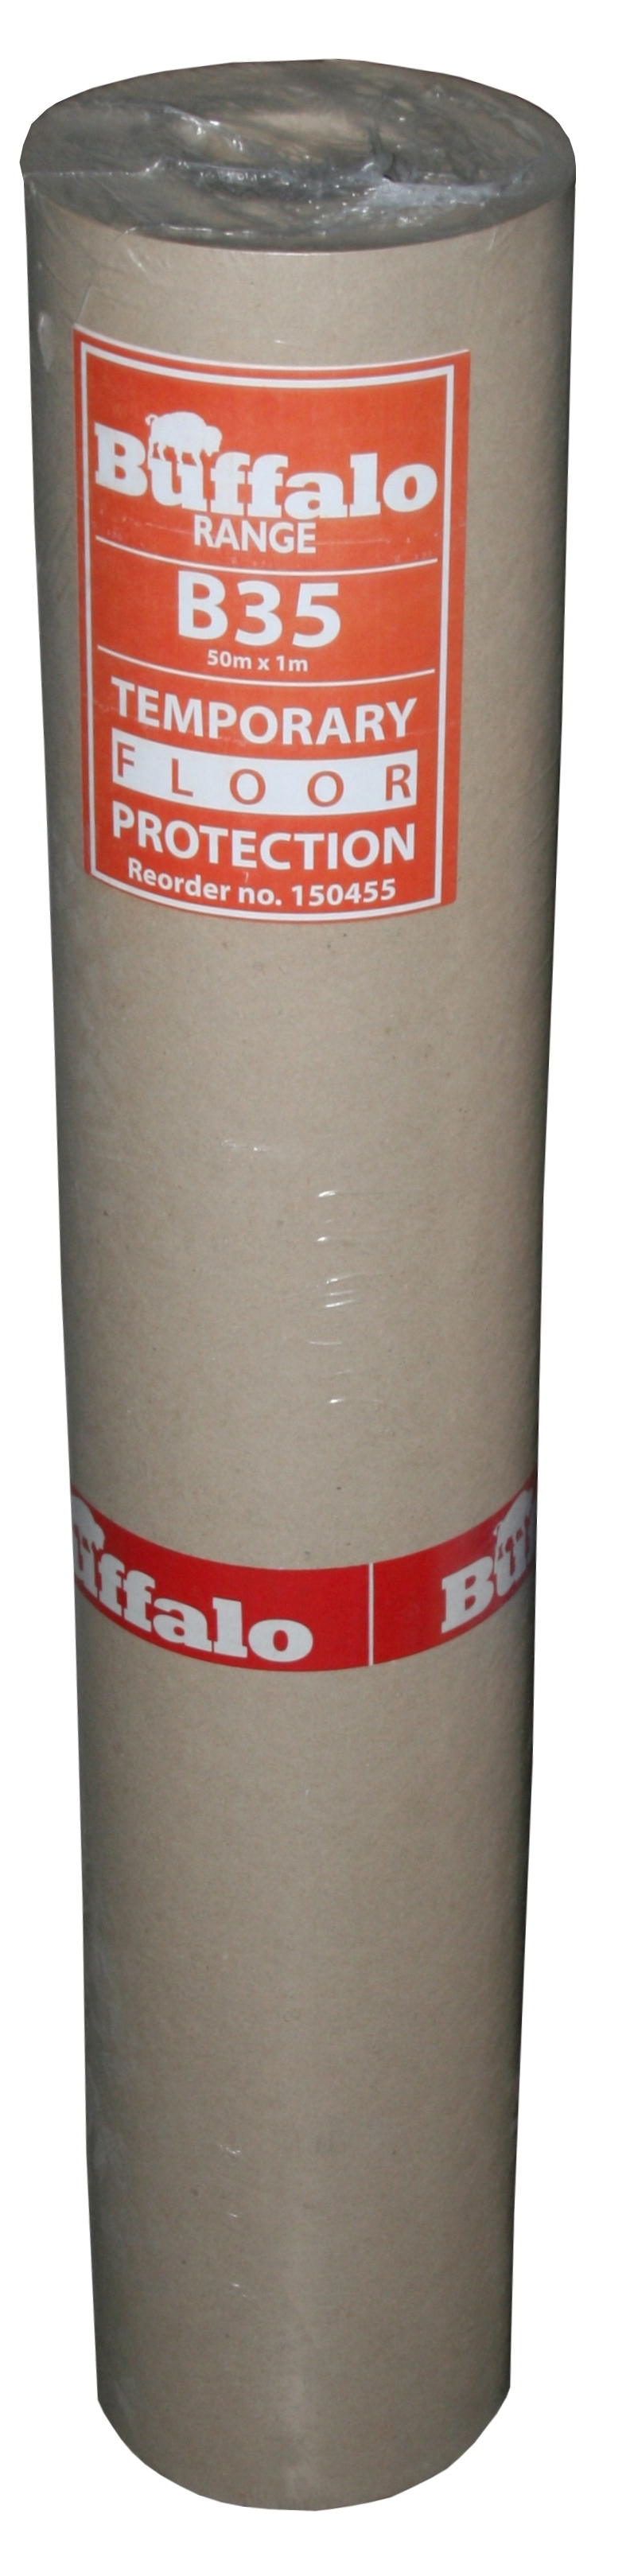 Floor Protection Buffalo Cardboard Roll (1 x 50m Roll)